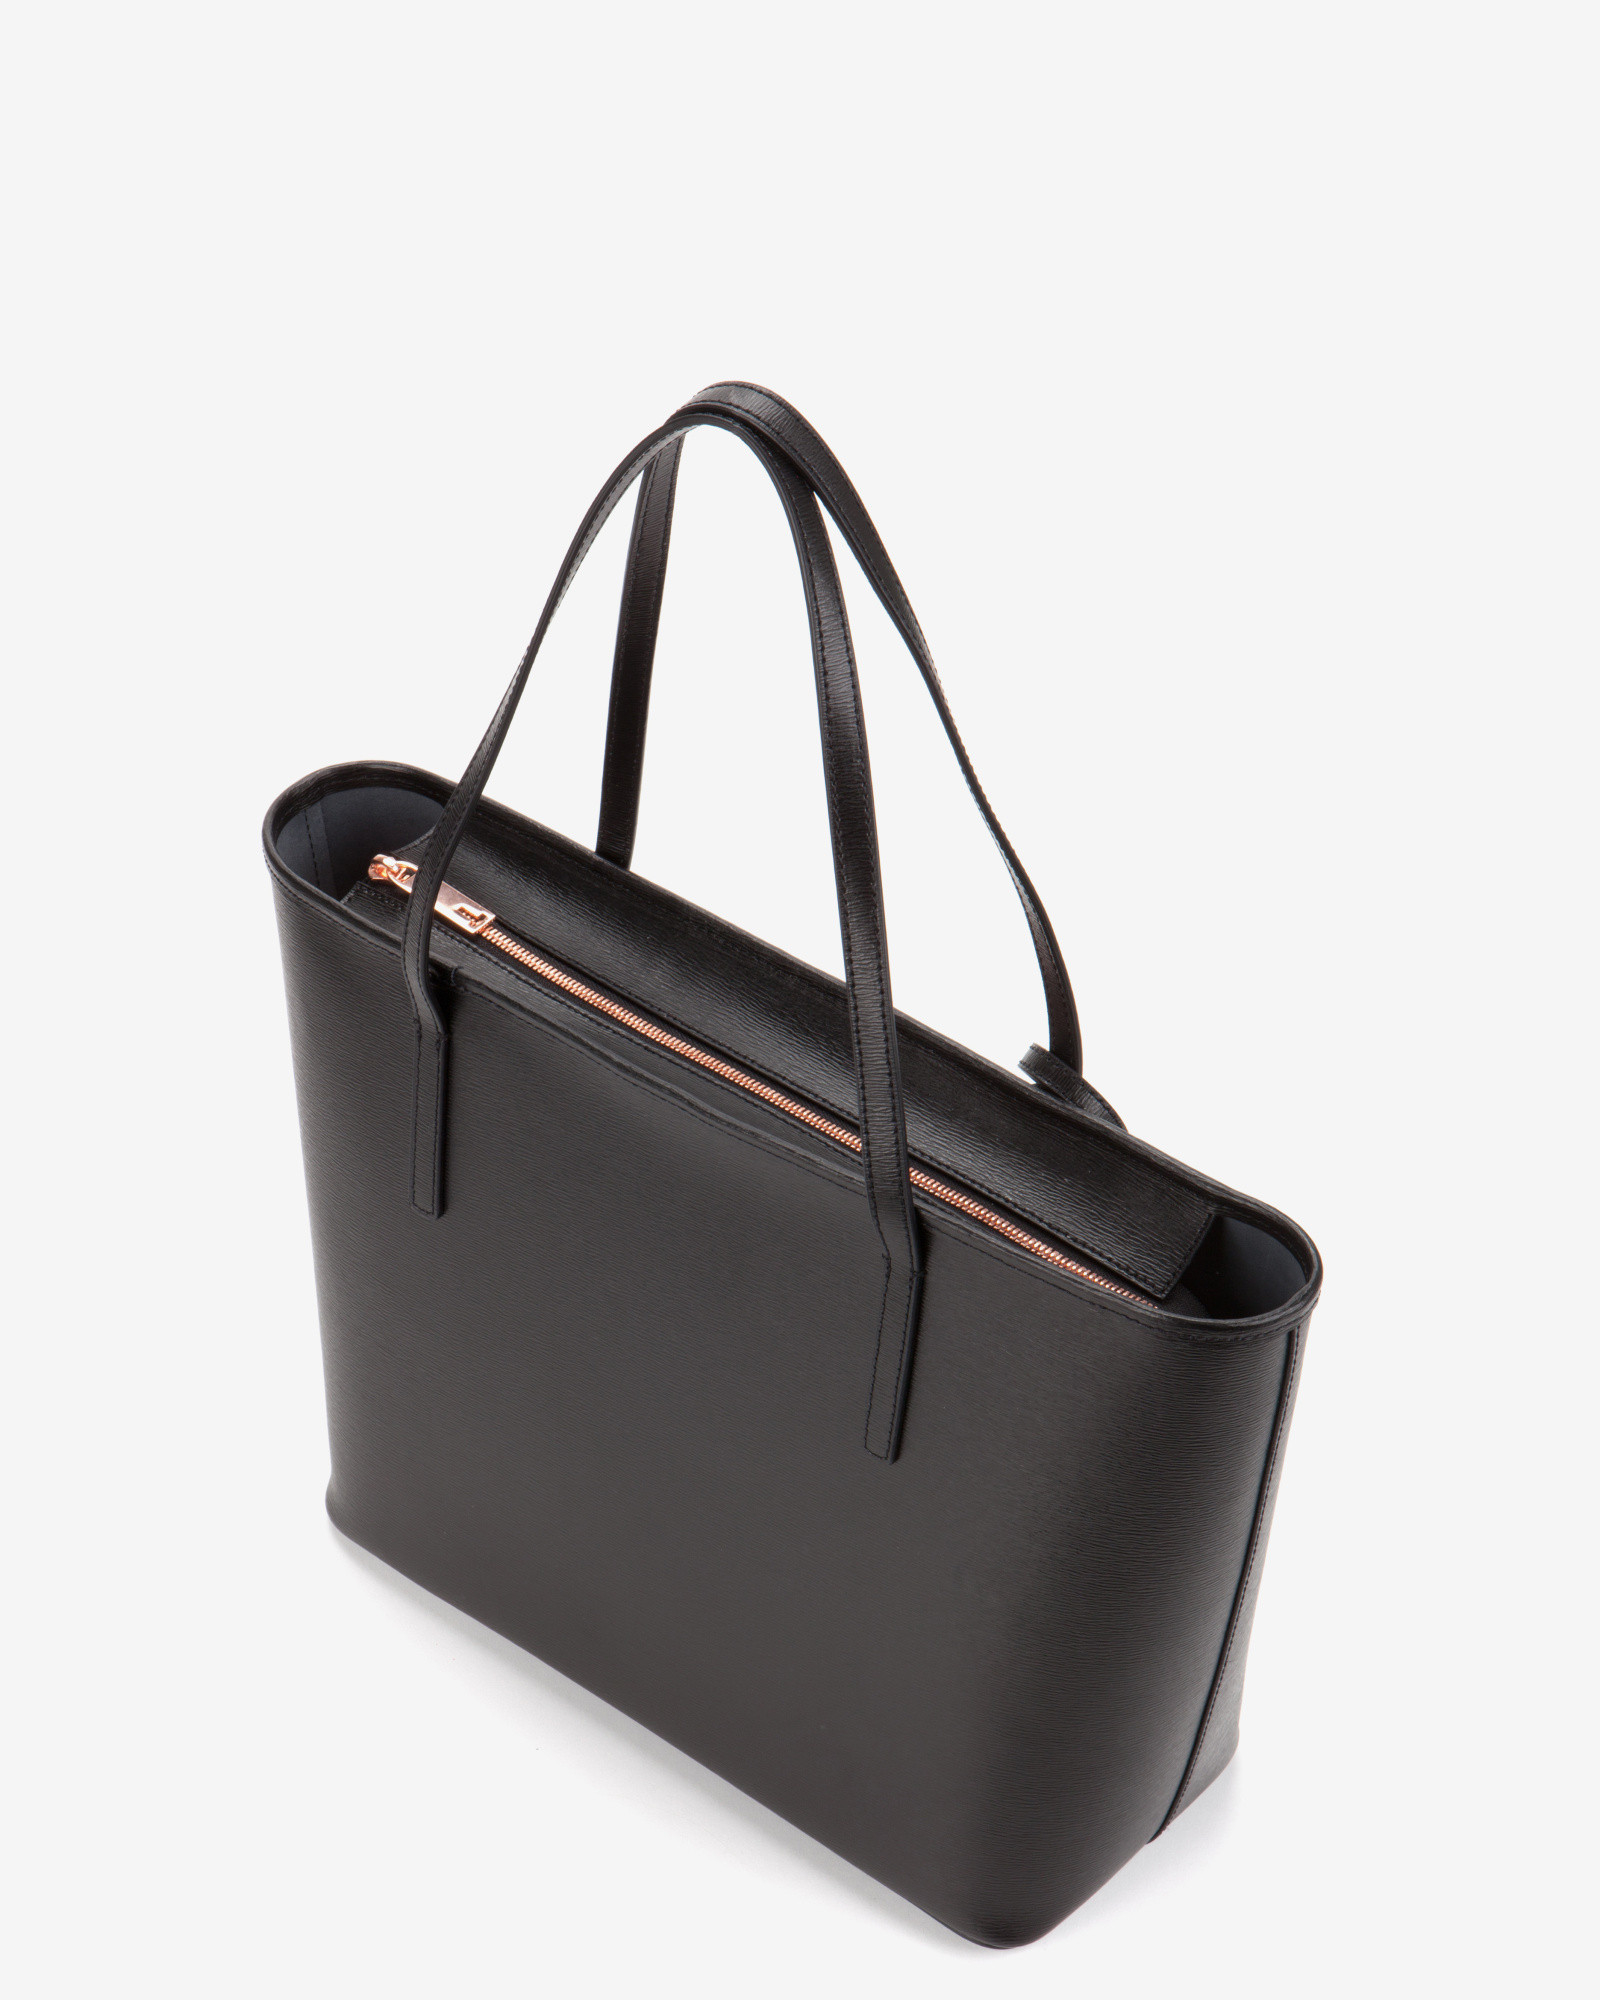 e90d1bb7586 Lyst Ted Baker Bonnita Leather Tote In Black. Delila Bow Detail Leather  Cross Body Bag ...